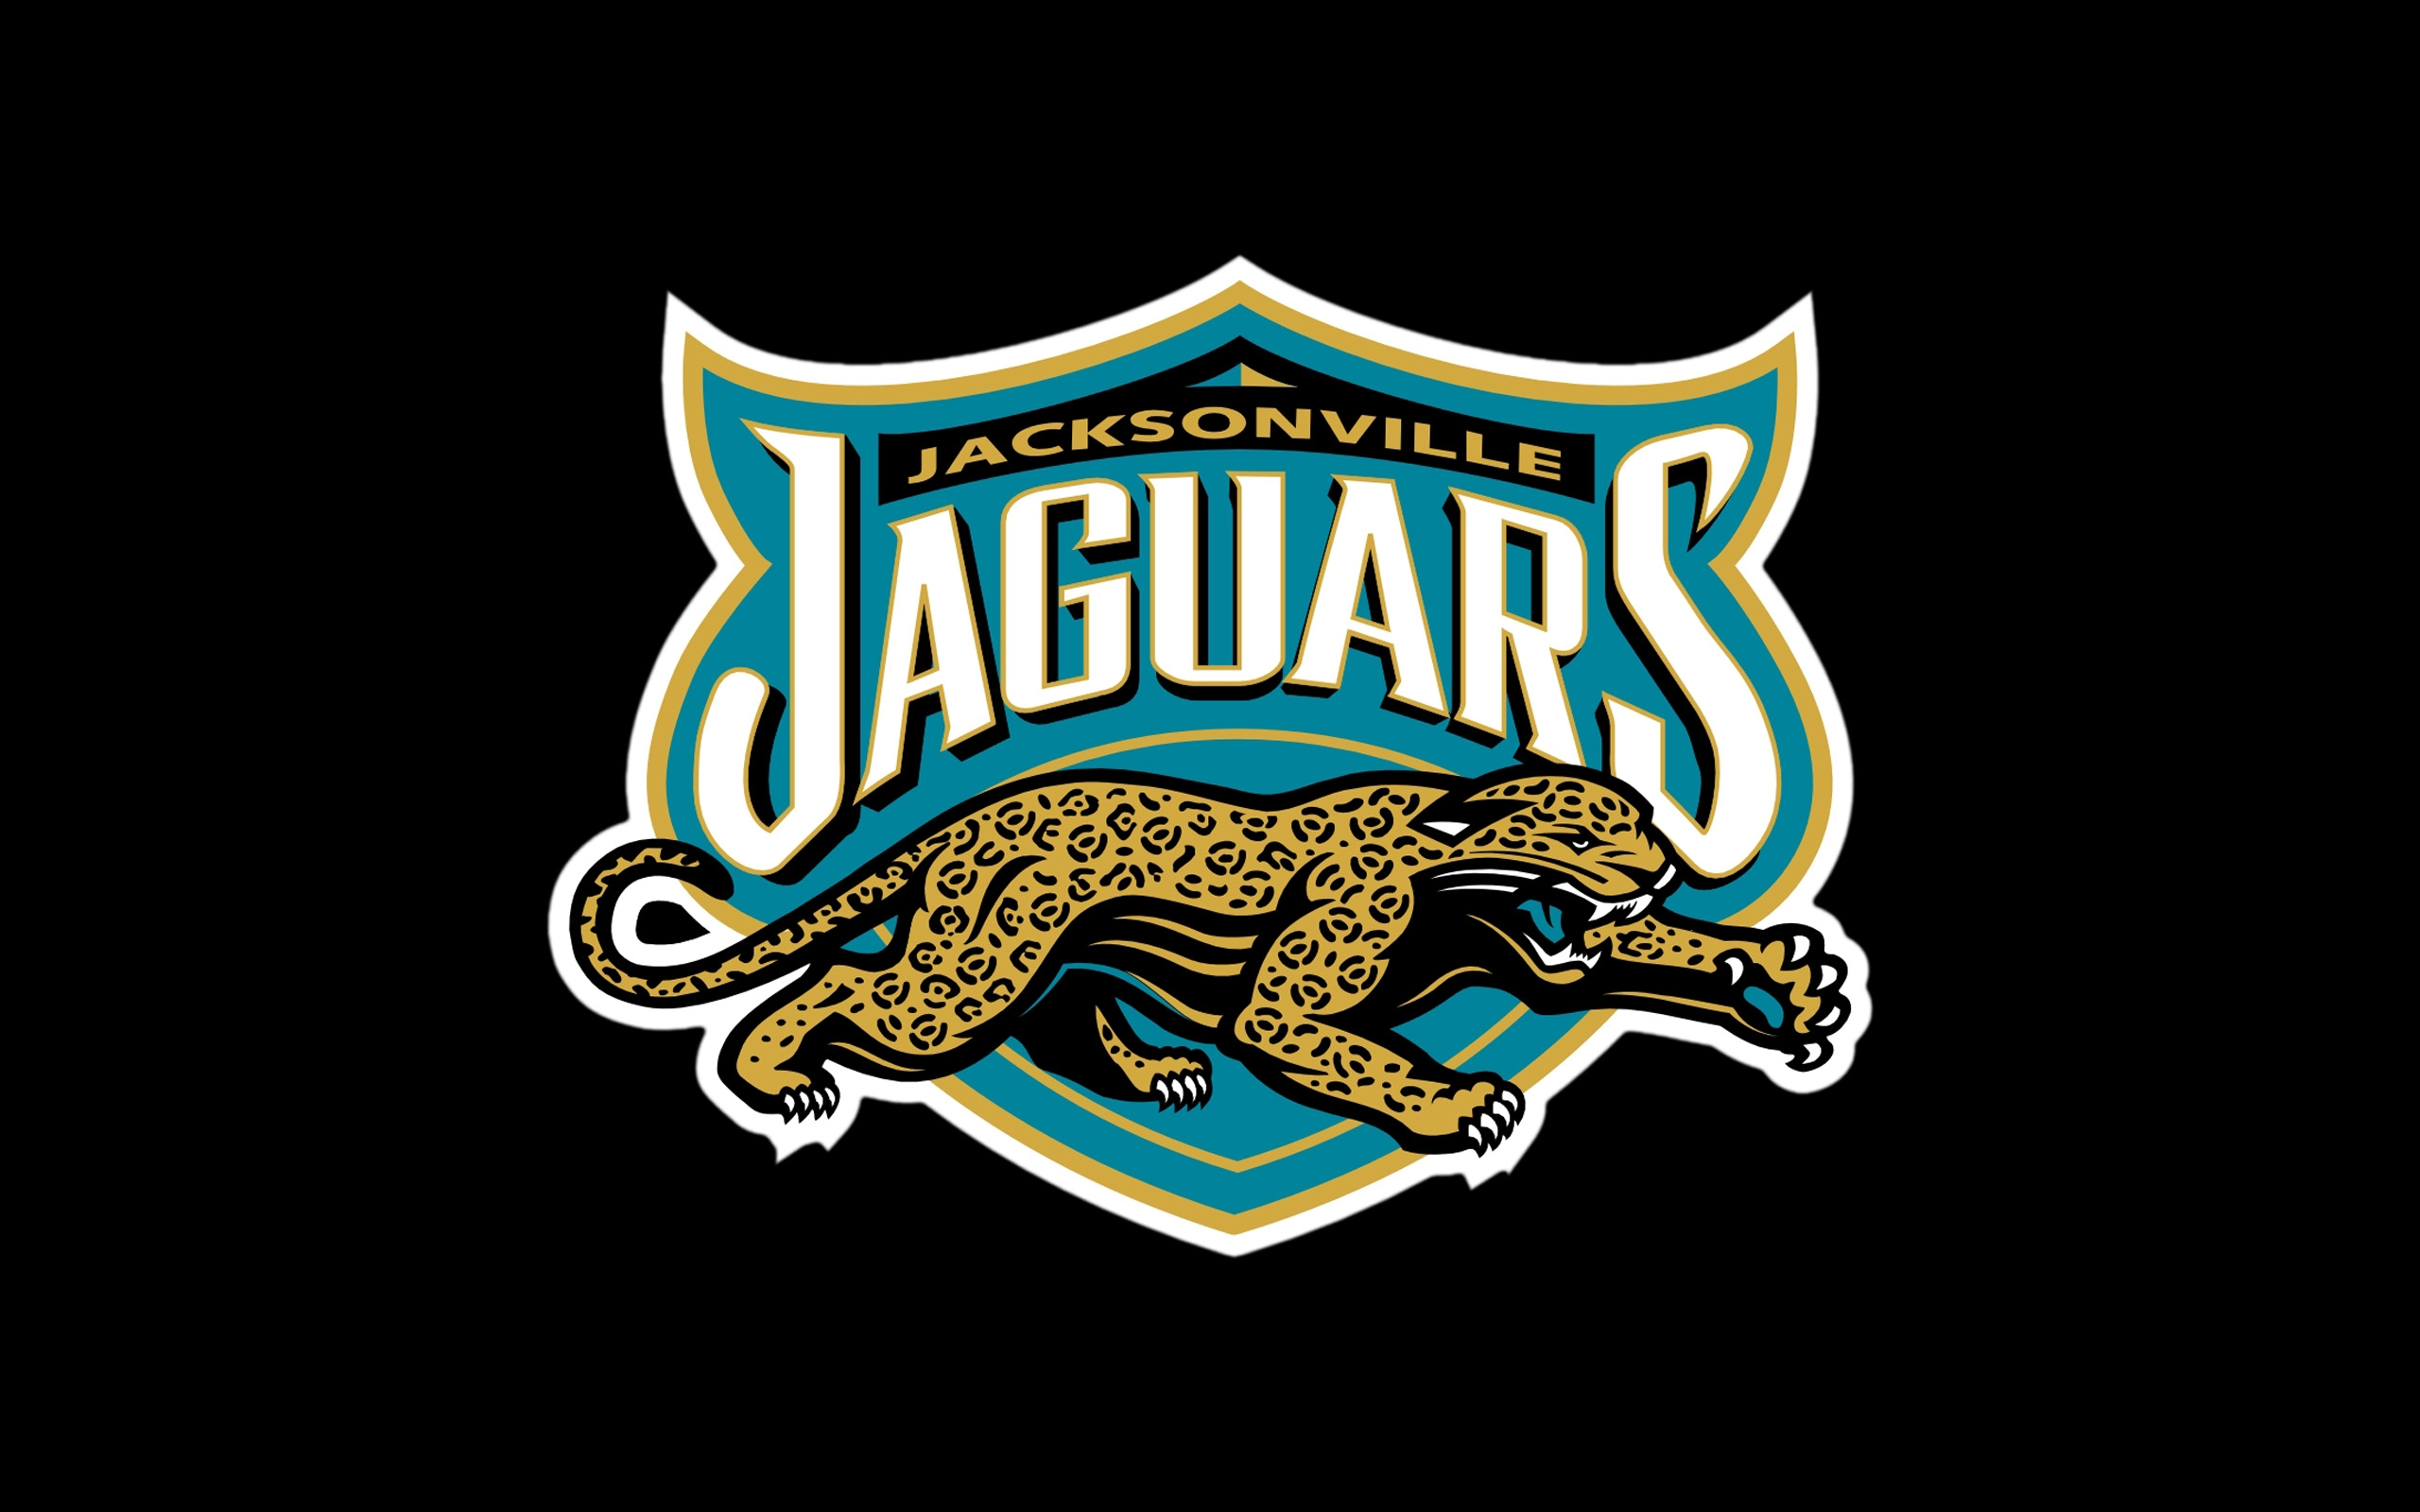 JACKSONVILLE JAGUARS nfl football rw wallpaper 2560x1600 157801 2560x1600